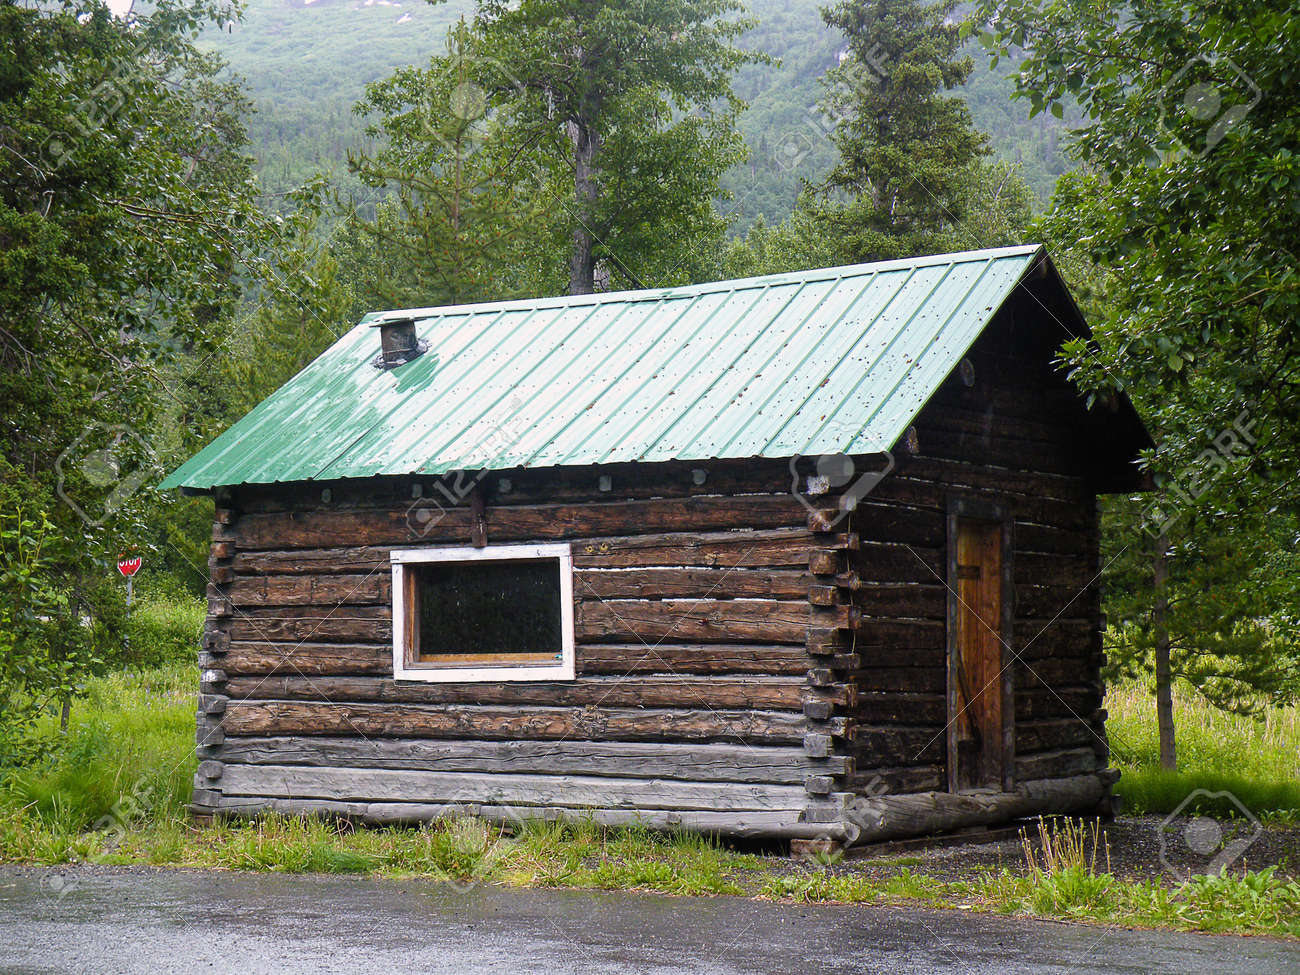 Old Rustic Log Cabin In Alaska Wilderness Stock Photo Picture And Royalty Free Image Image 100857255